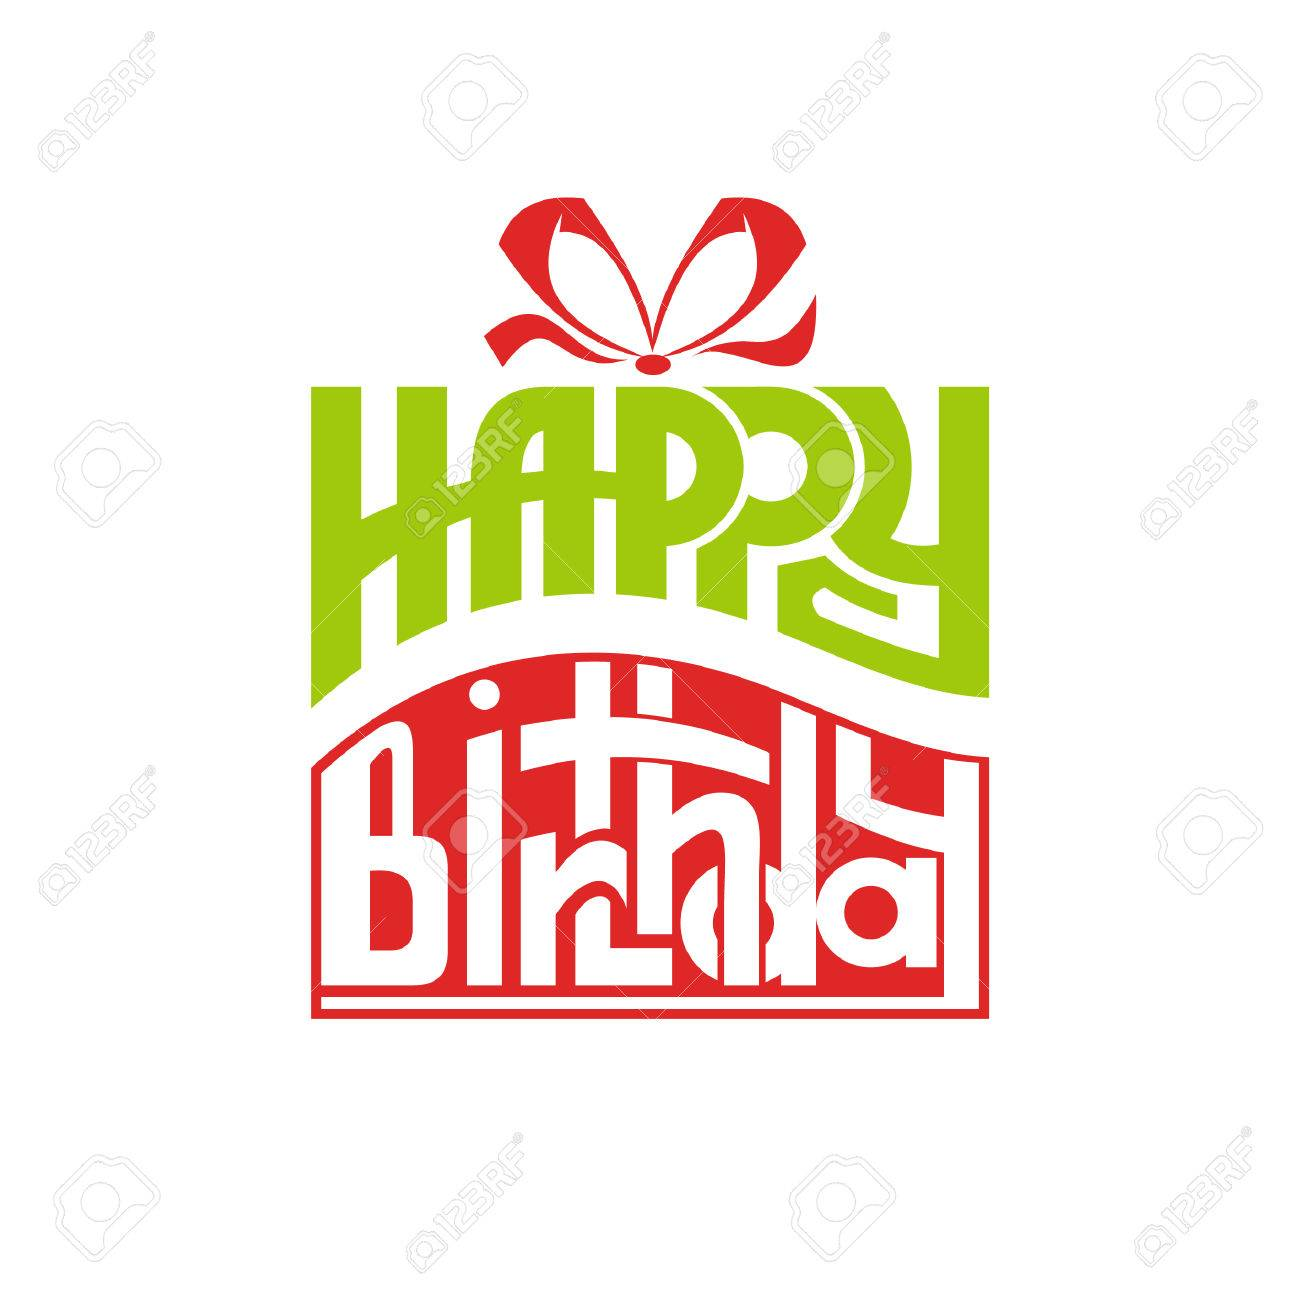 birthday gift box clipart ; 63239300-birthday-gift-box-vector-icon-lettering-happy-birthday